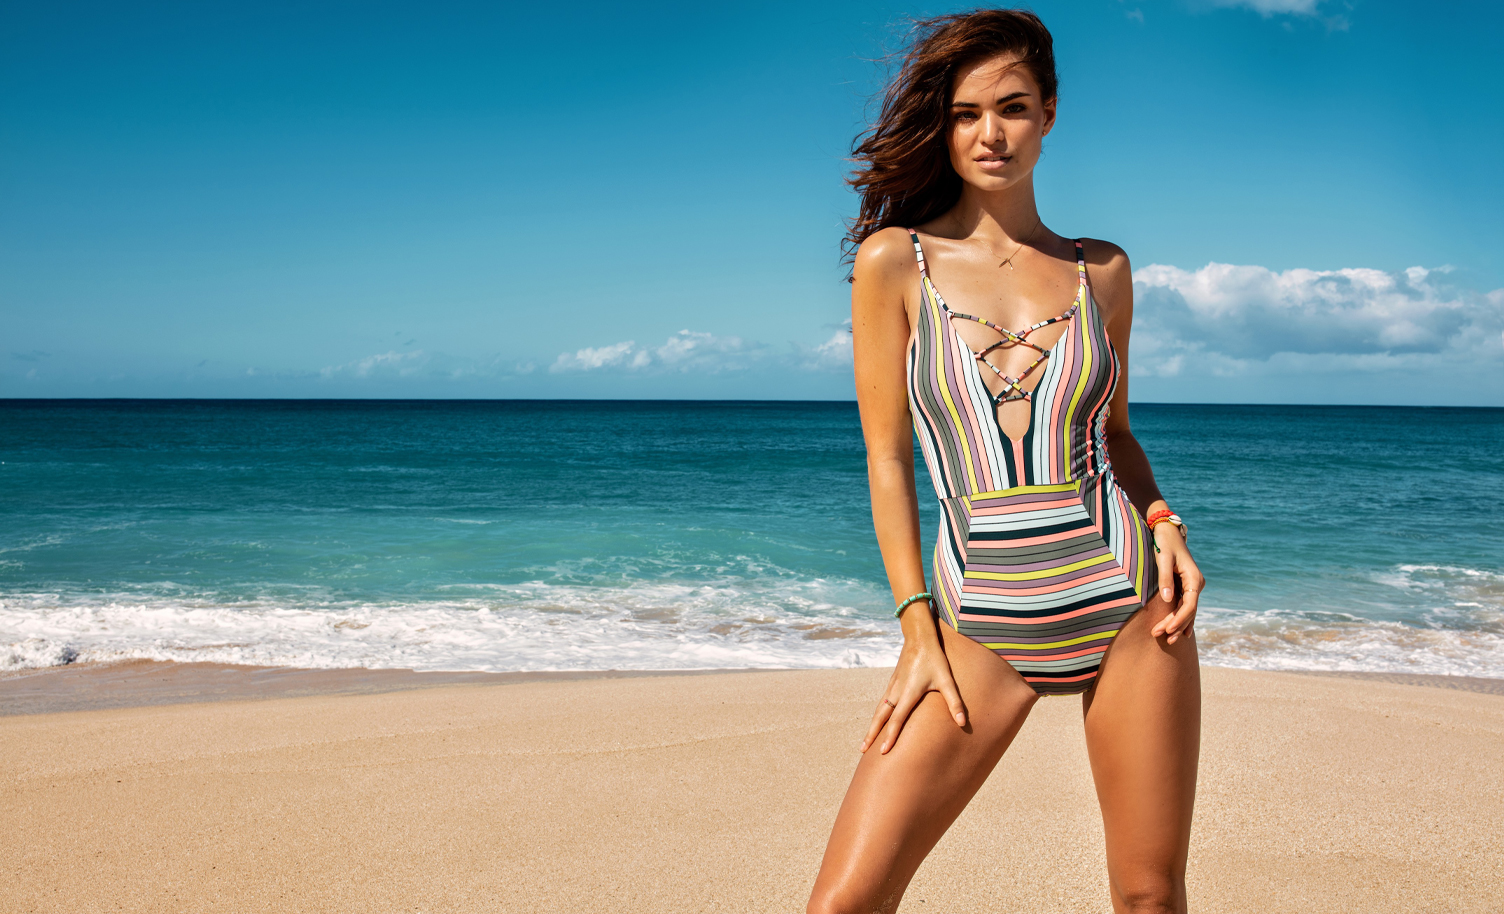 Robin Holzken Hot Swimsuit Wallpapers HD - Robin Holzken Hot Swimsuit Wallpapers HD